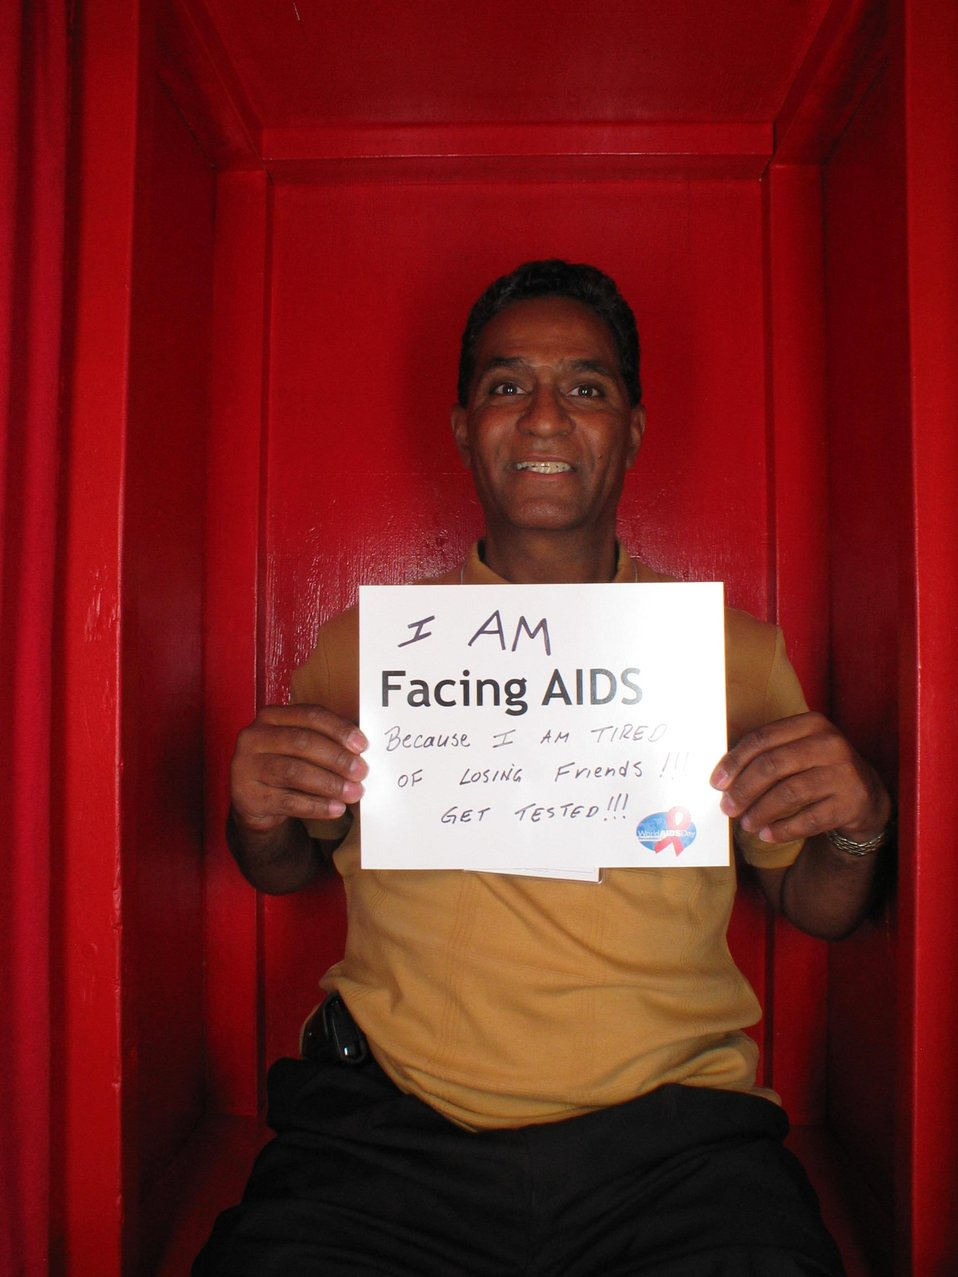 I am Facing AIDS because I am tired of losing friends... GET TESTED!!!